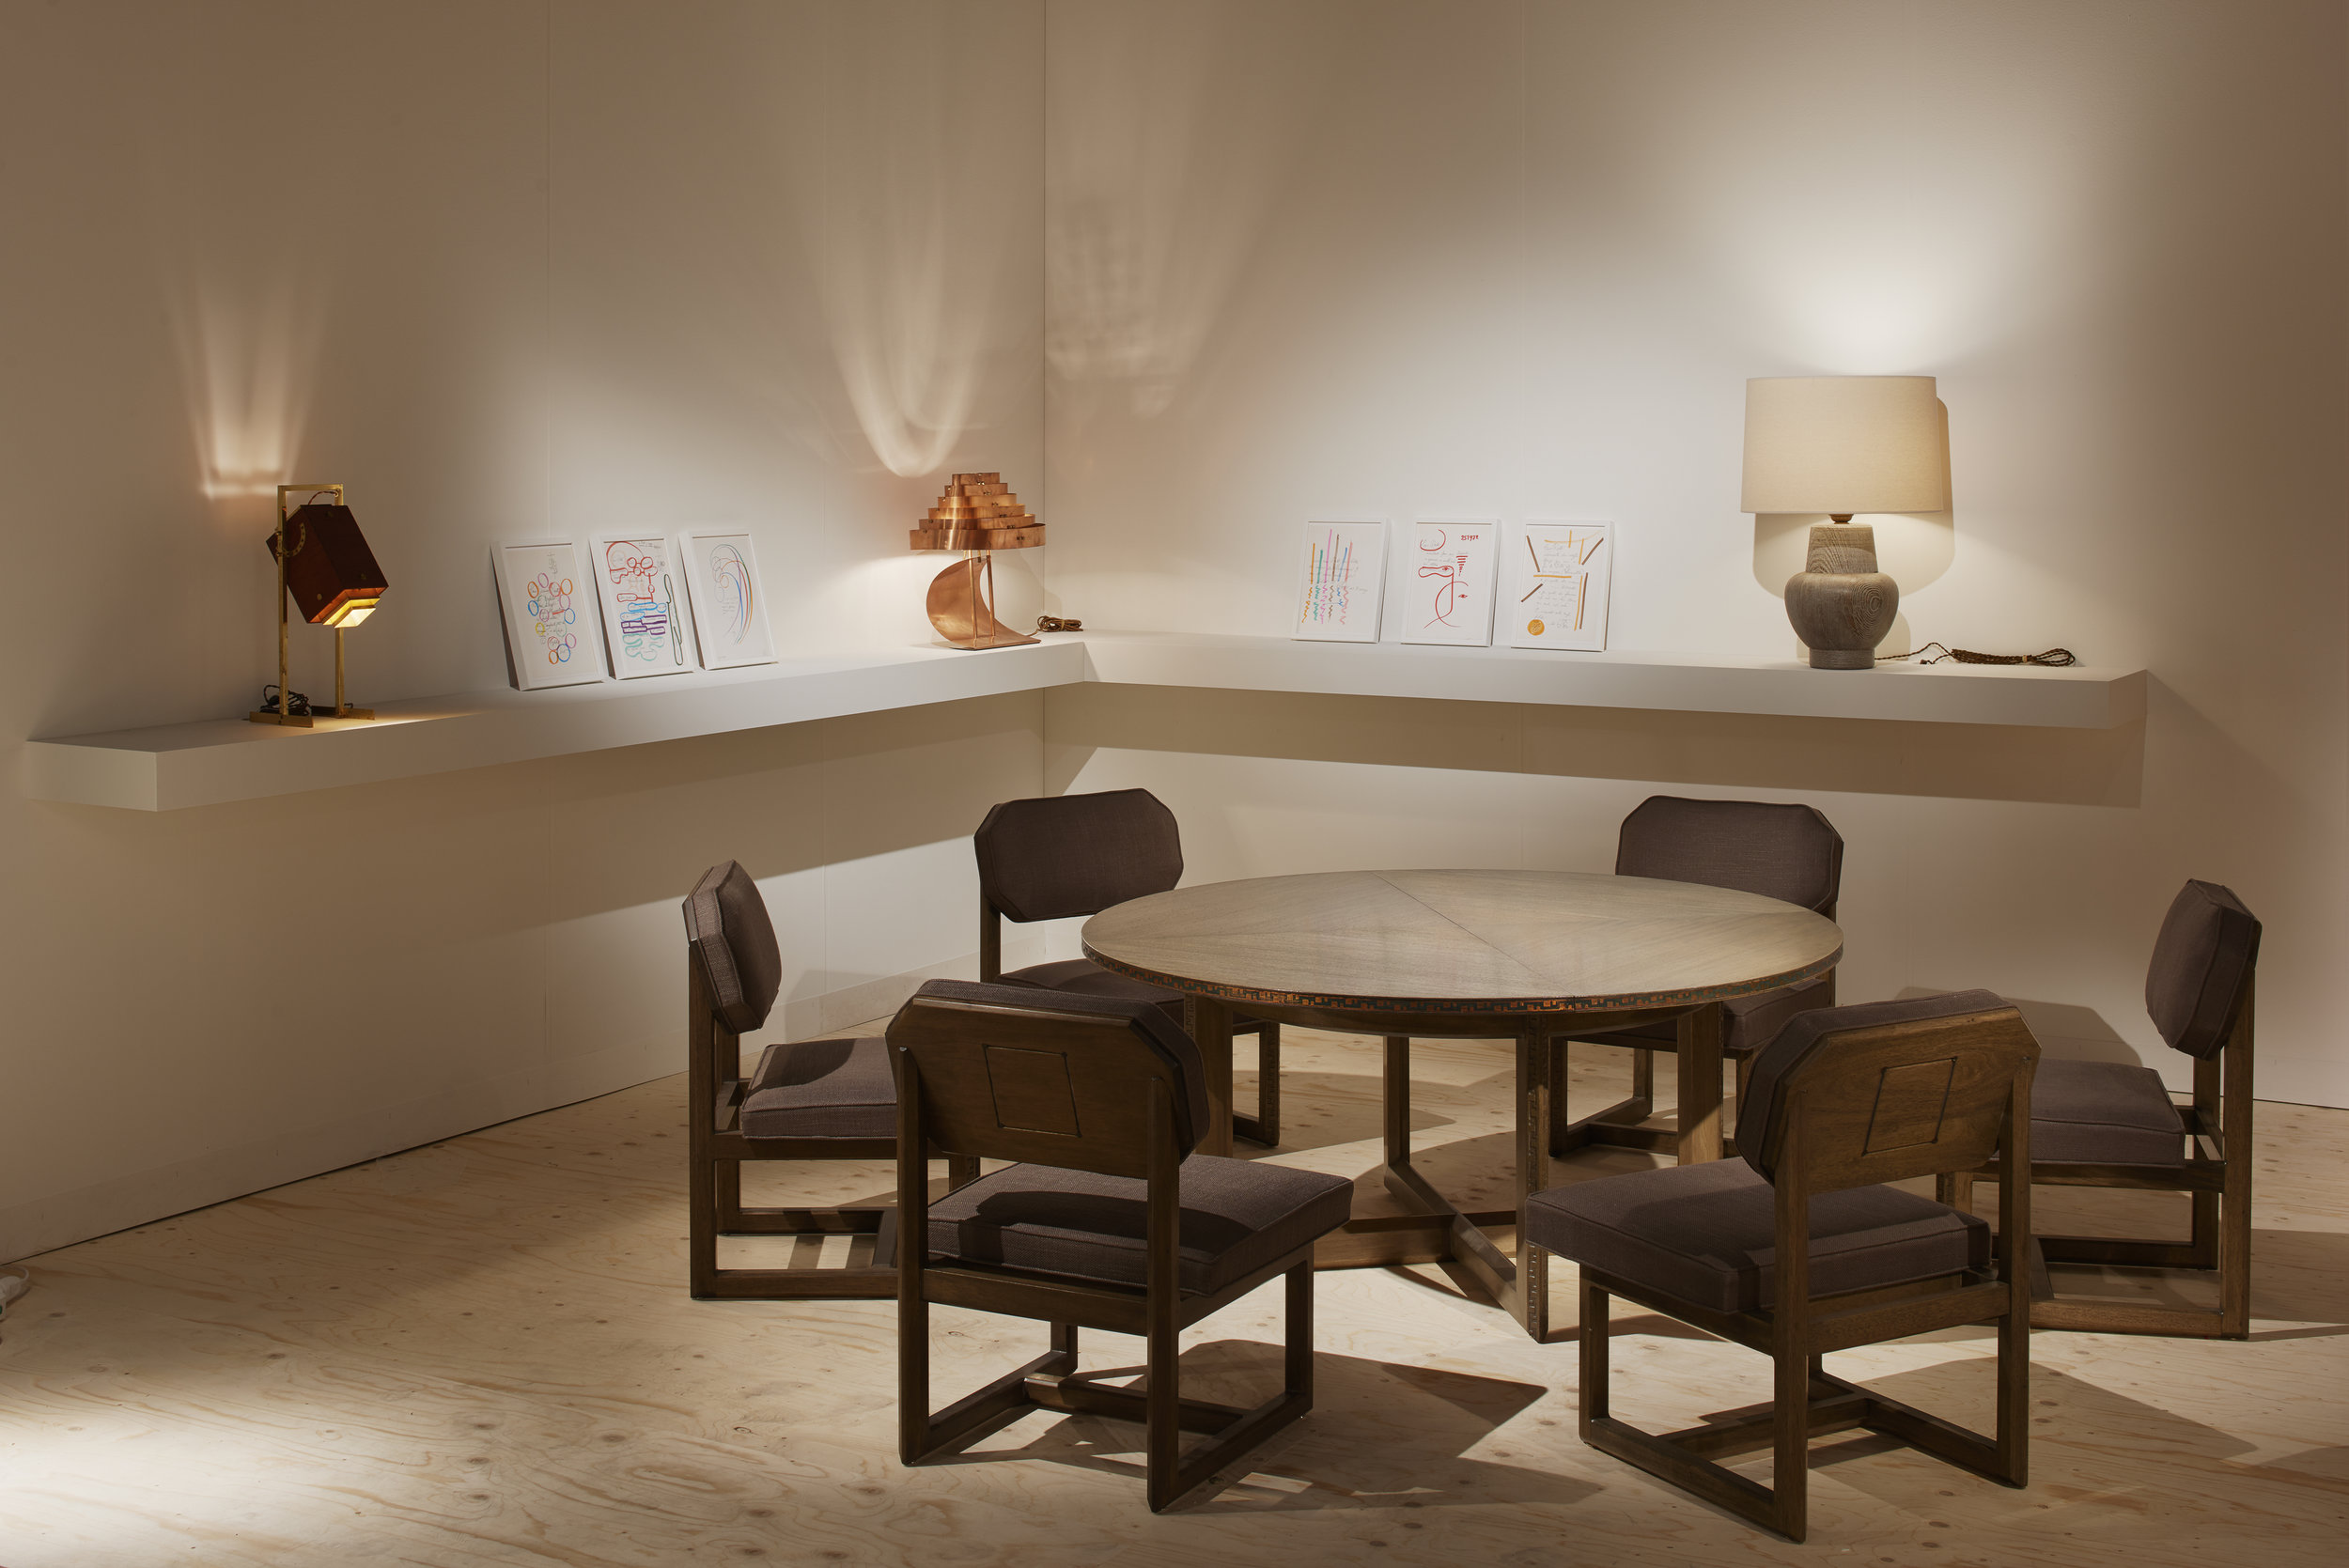 Dining room setting with Frank Lloyd Wright chairs at Galerie Eric Philippe - Design Miami/ Basel ⓒ  James Harris